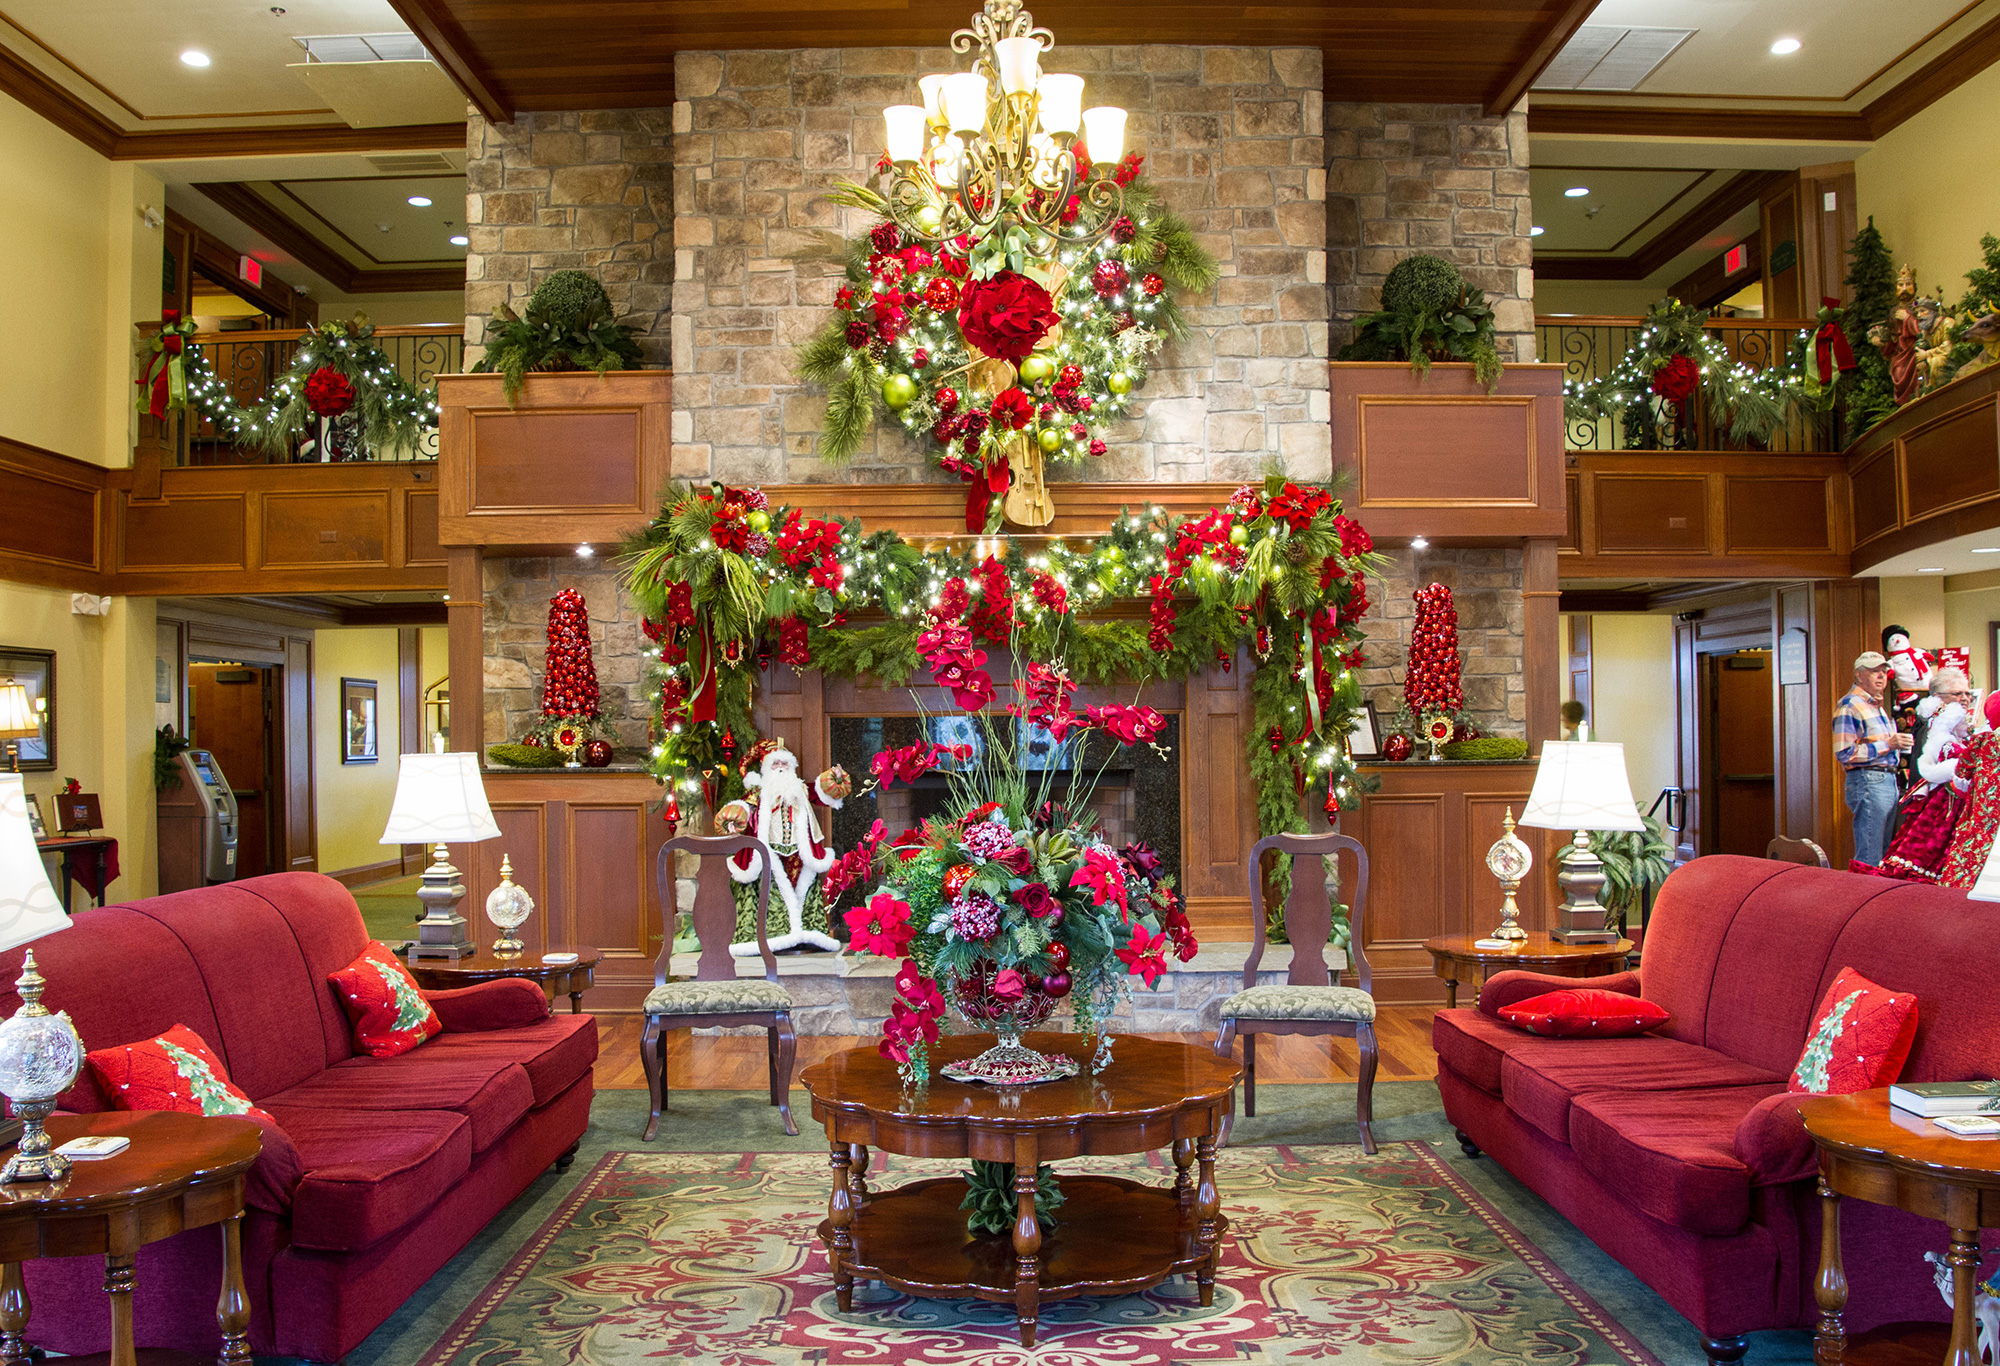 Inside the Tennessee Resort Where It's Christmas All Year Round